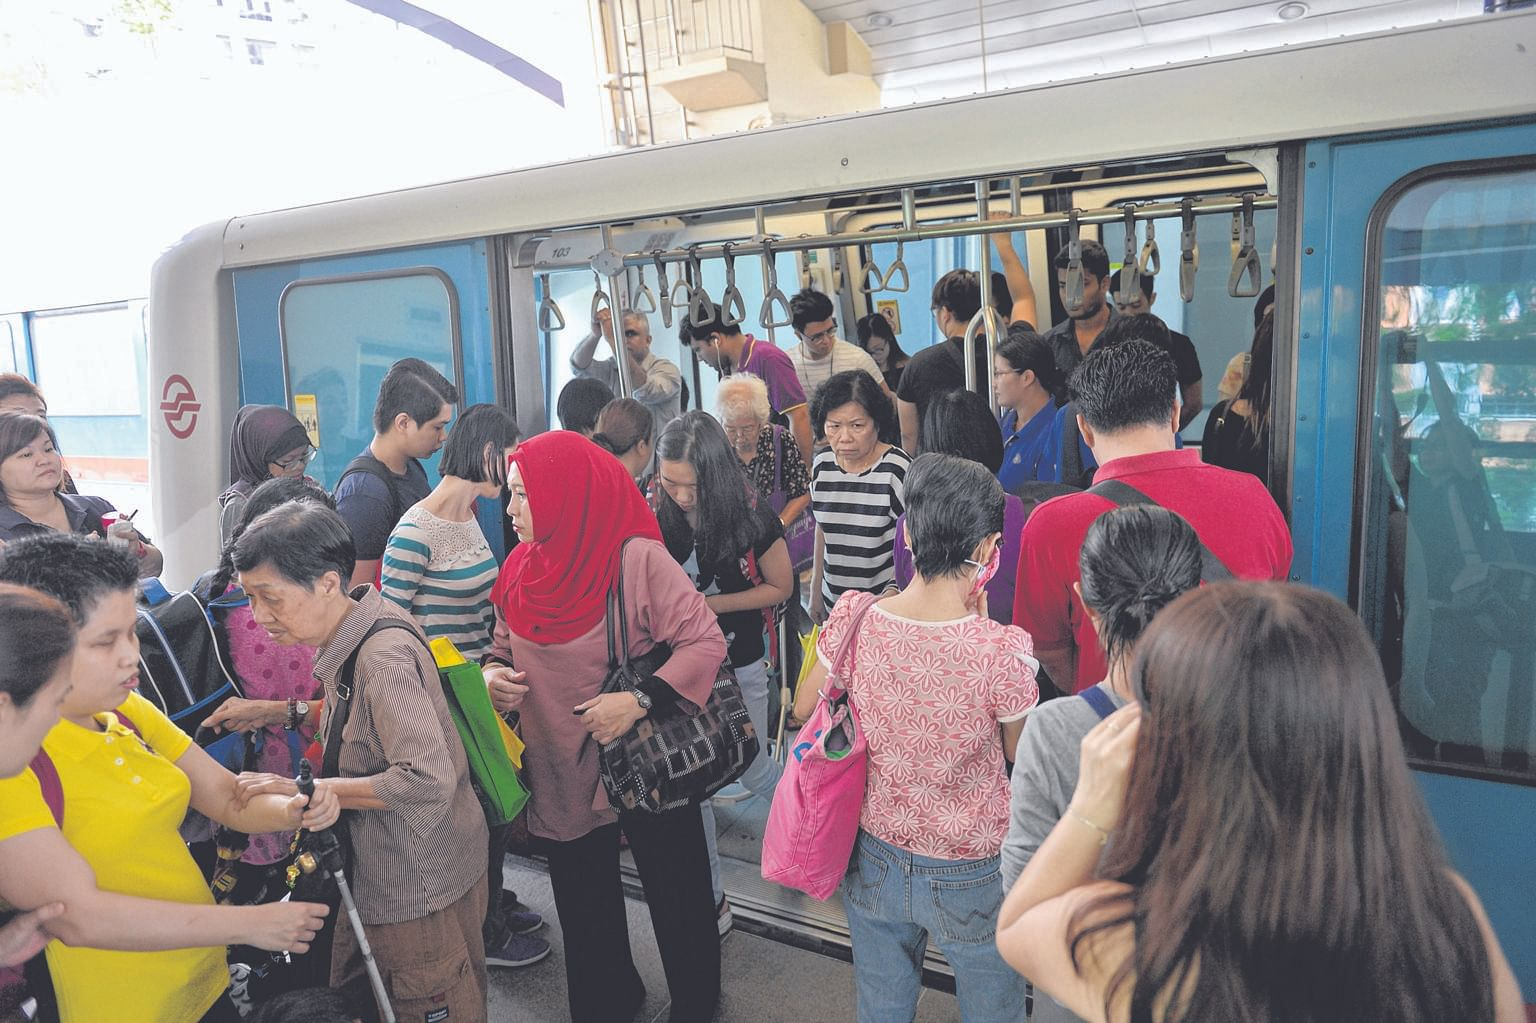 SMRT suspended services on the 17-year-old Bukit Panjang LRT line yesterday to do a thorough check.